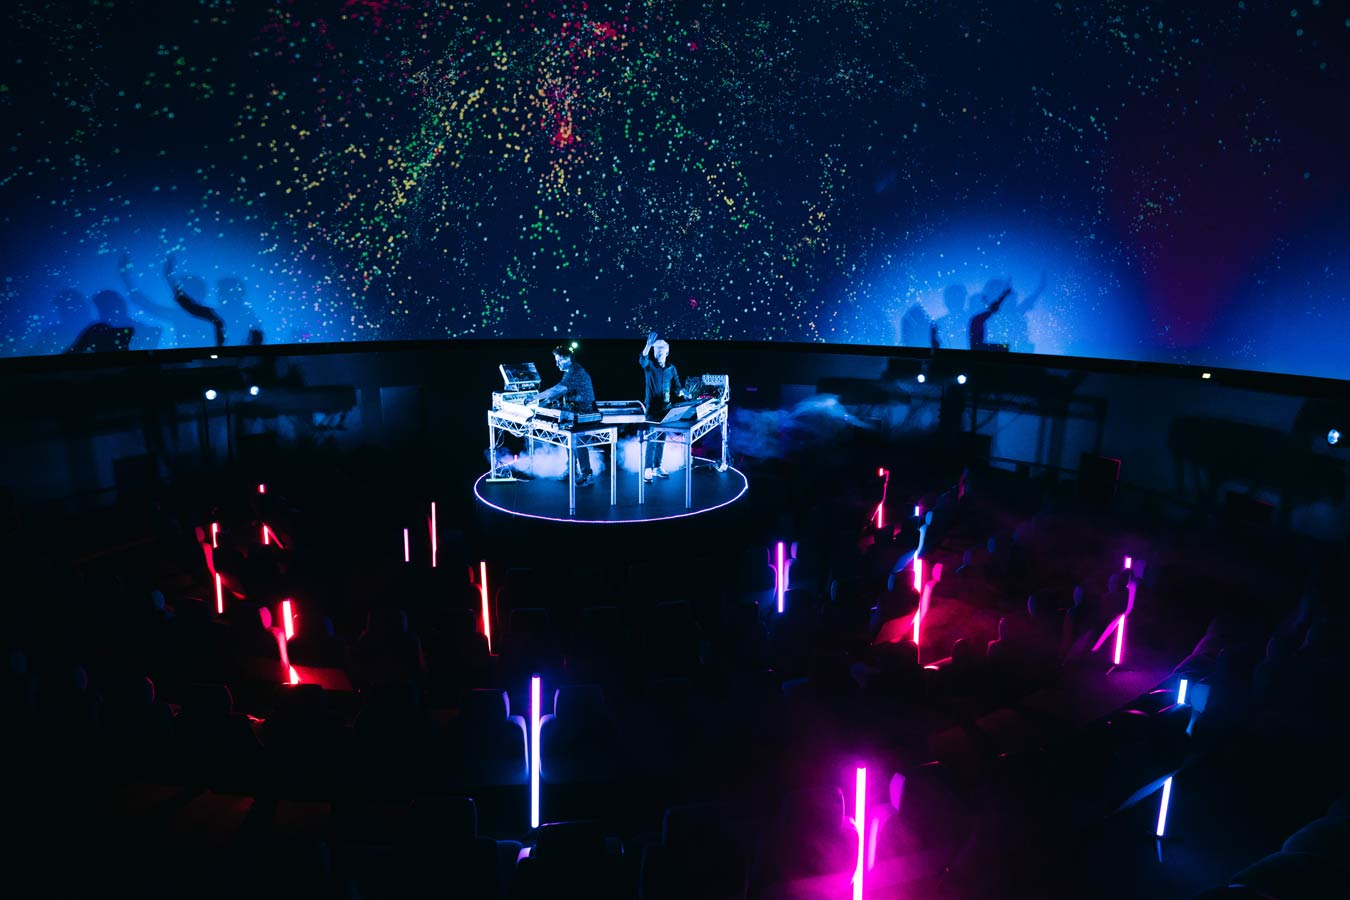 band-the-avalanches-perform-amidst-space-projection-at-melbourne-planetarium-image-by-liam-pethick-for-mushroom-creative